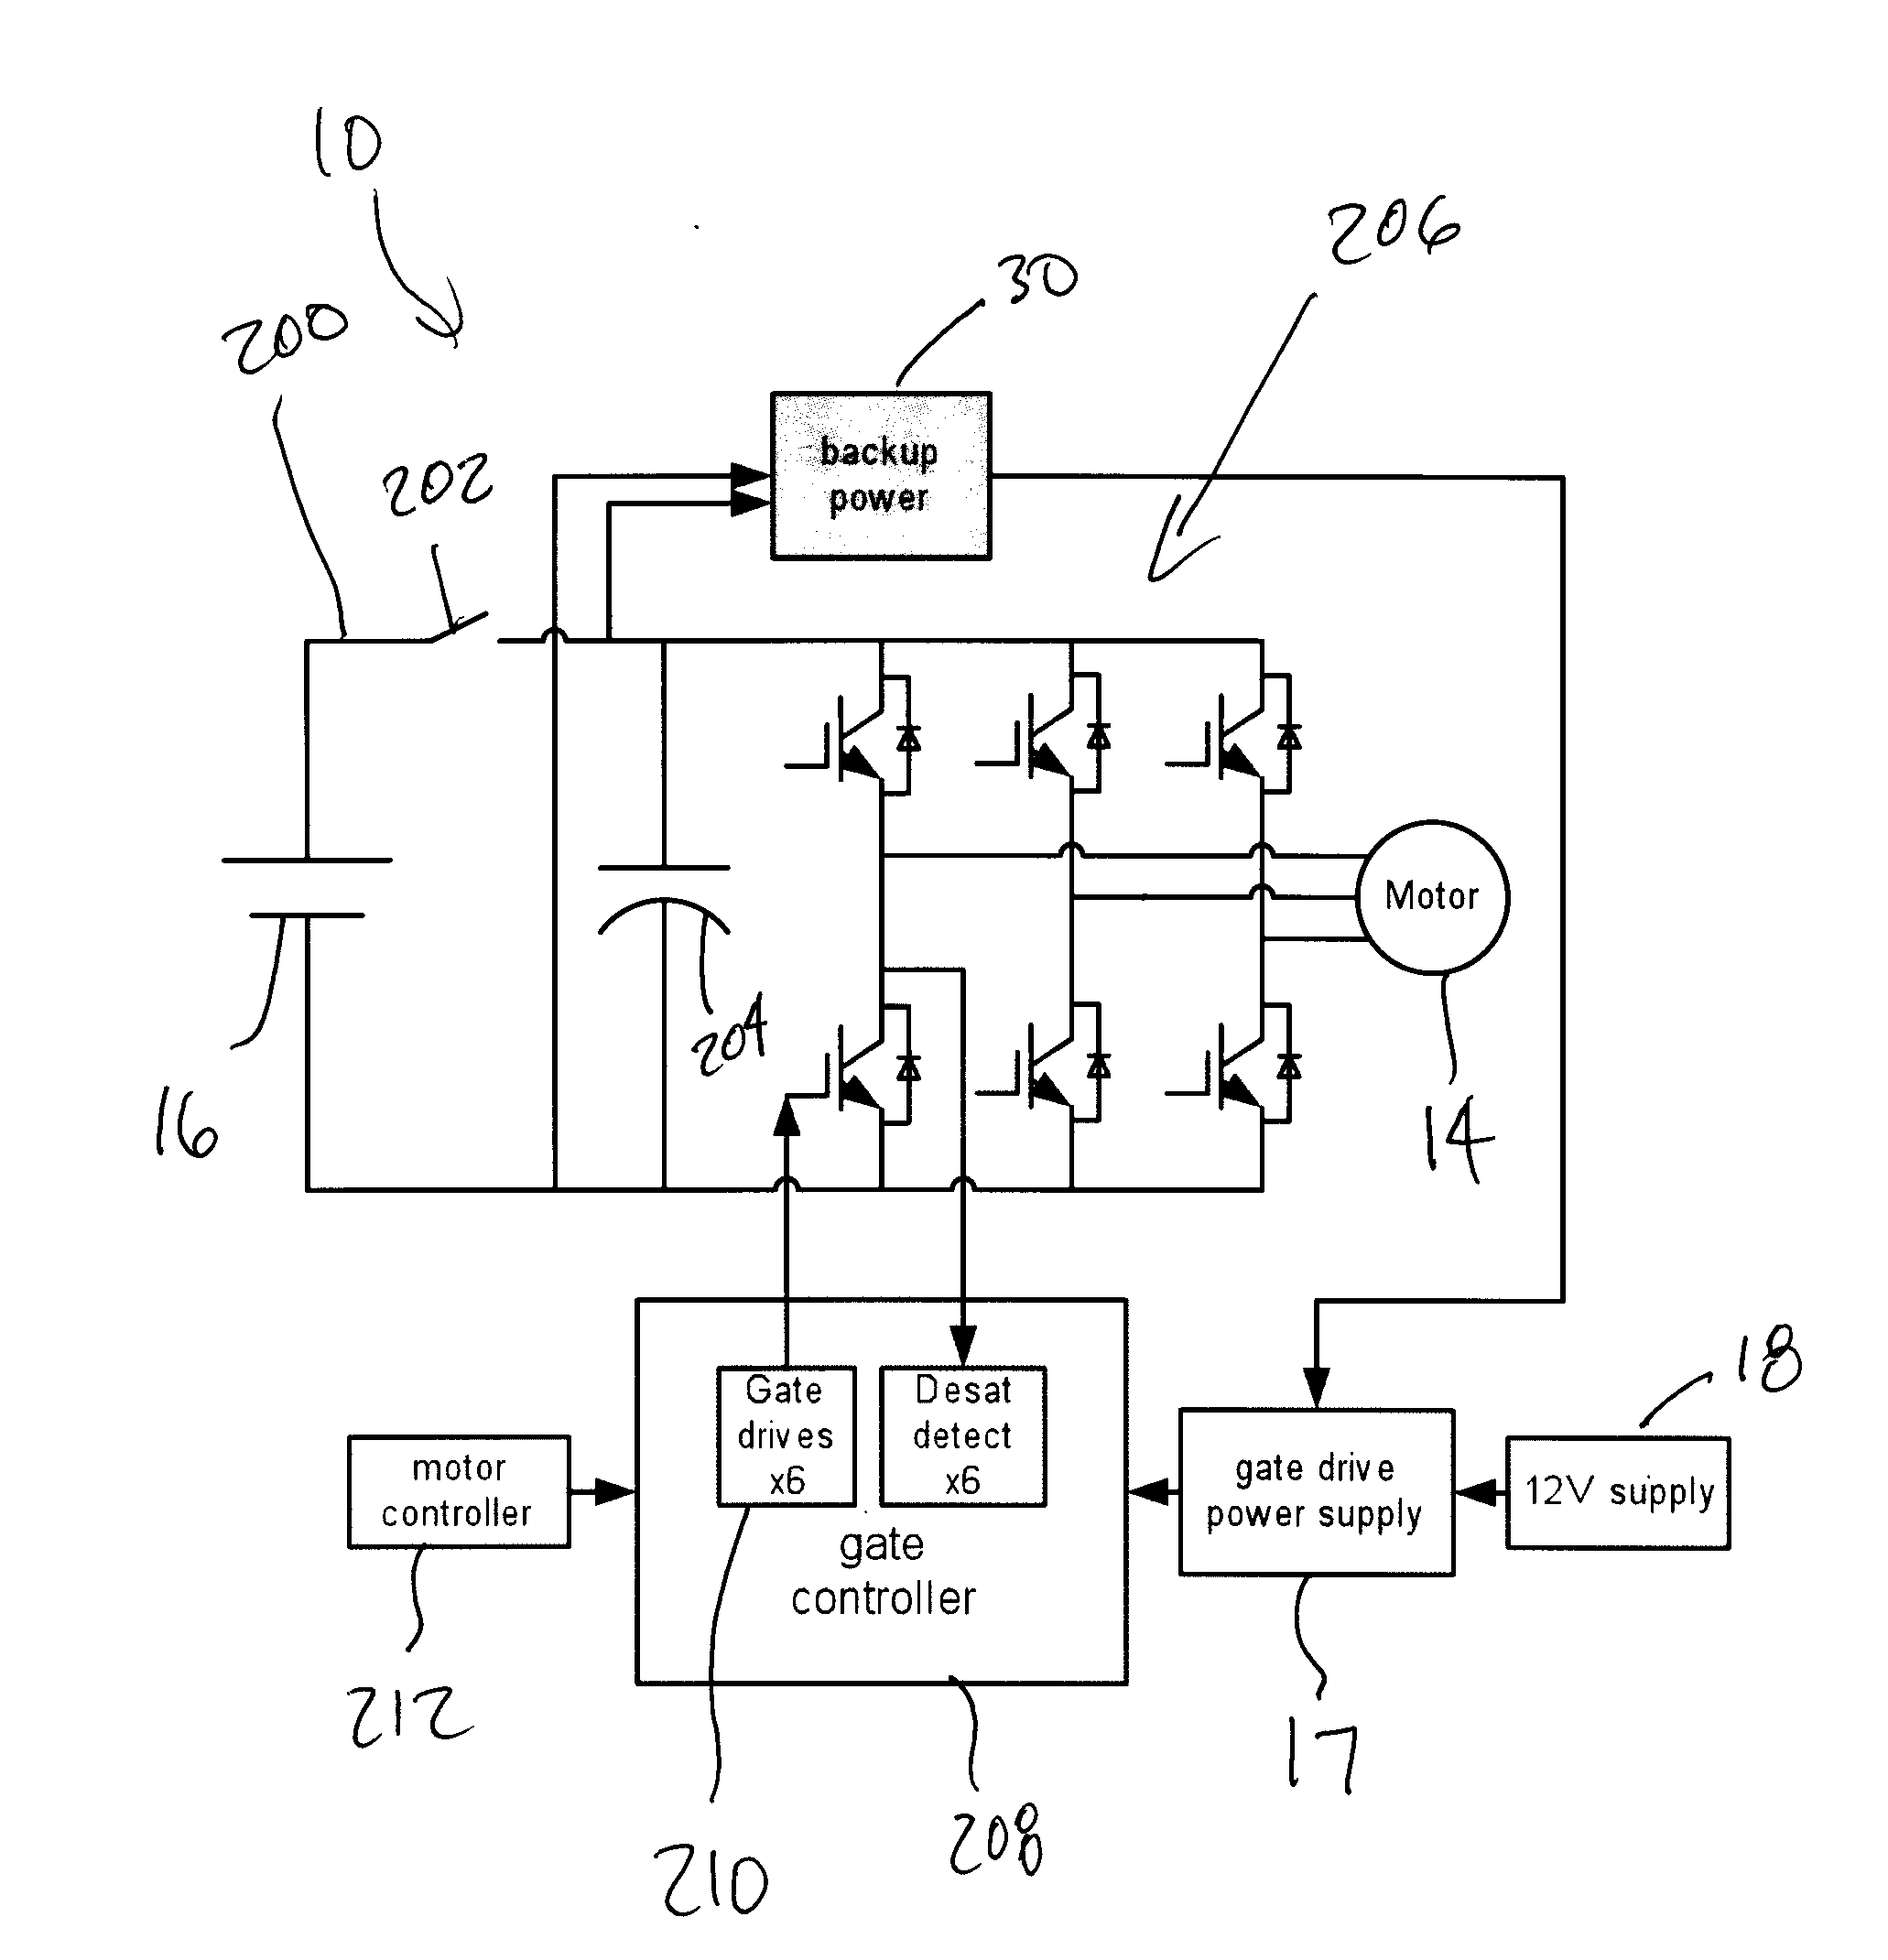 Brevet Us20120235613 Backup Power For Overvoltage Protection Circuit Diagram Of Synchronized Mains Voltage Control Patent Drawing